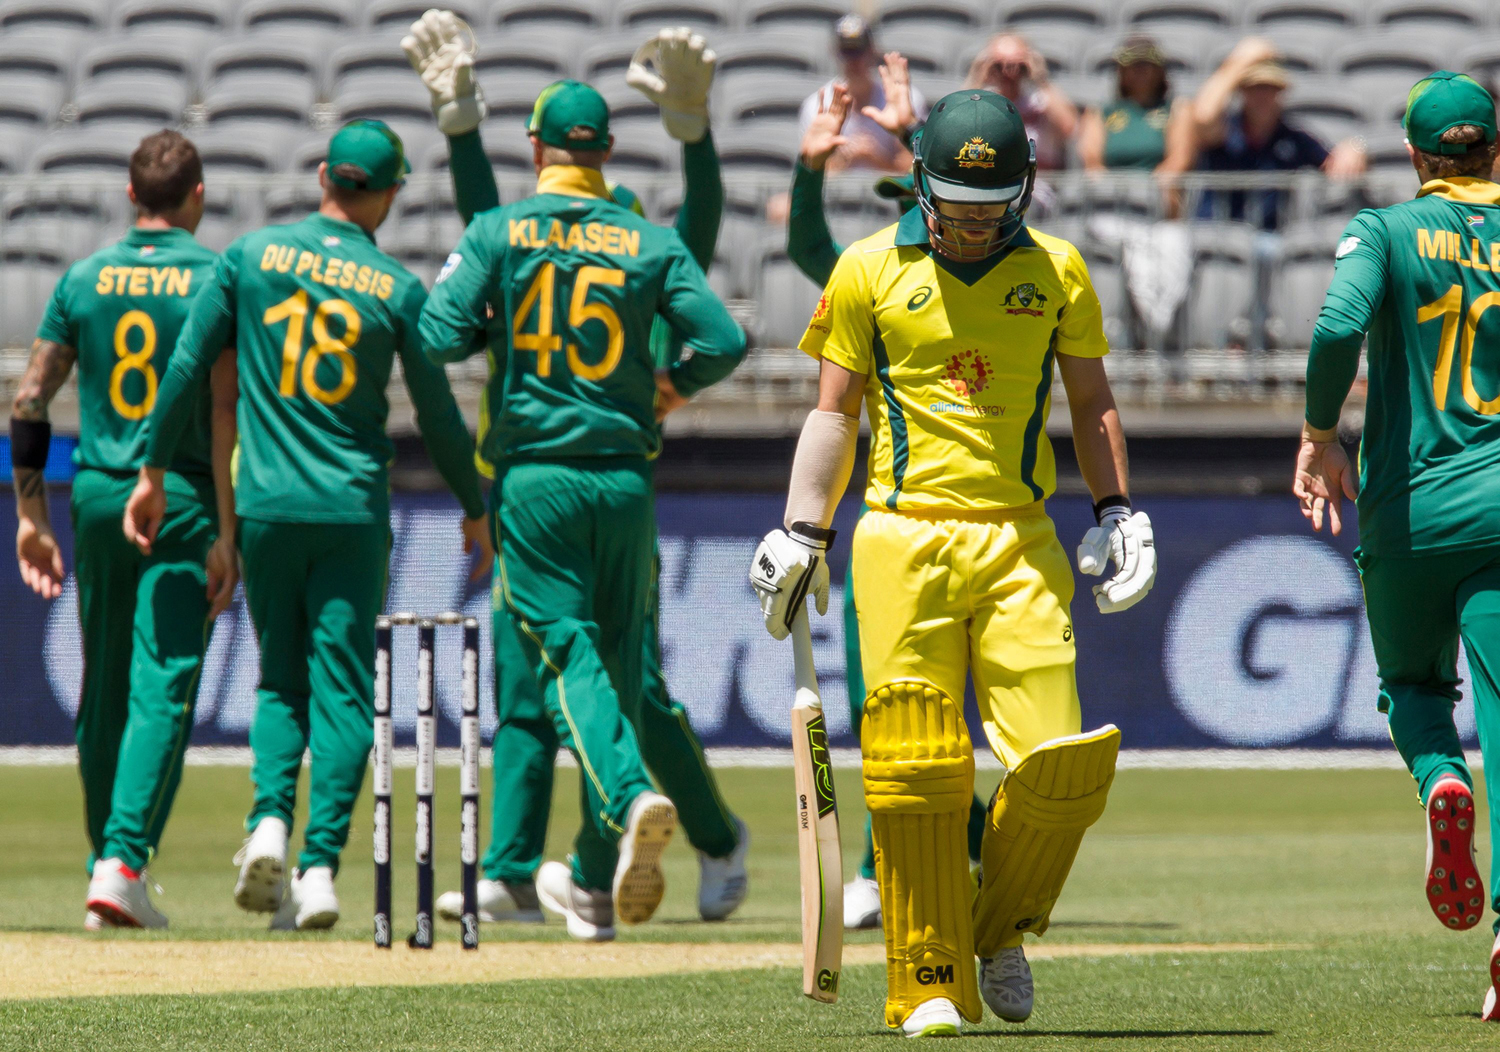 Australia's Travis Head (2nd R) walks off after being dismissed by South Africa's Dale Steyn (far R) during the first one-day international (ODI) cricket match between South Africa and Australia at the Optus Stadium in Perth on November 4, 2018. (Photo by